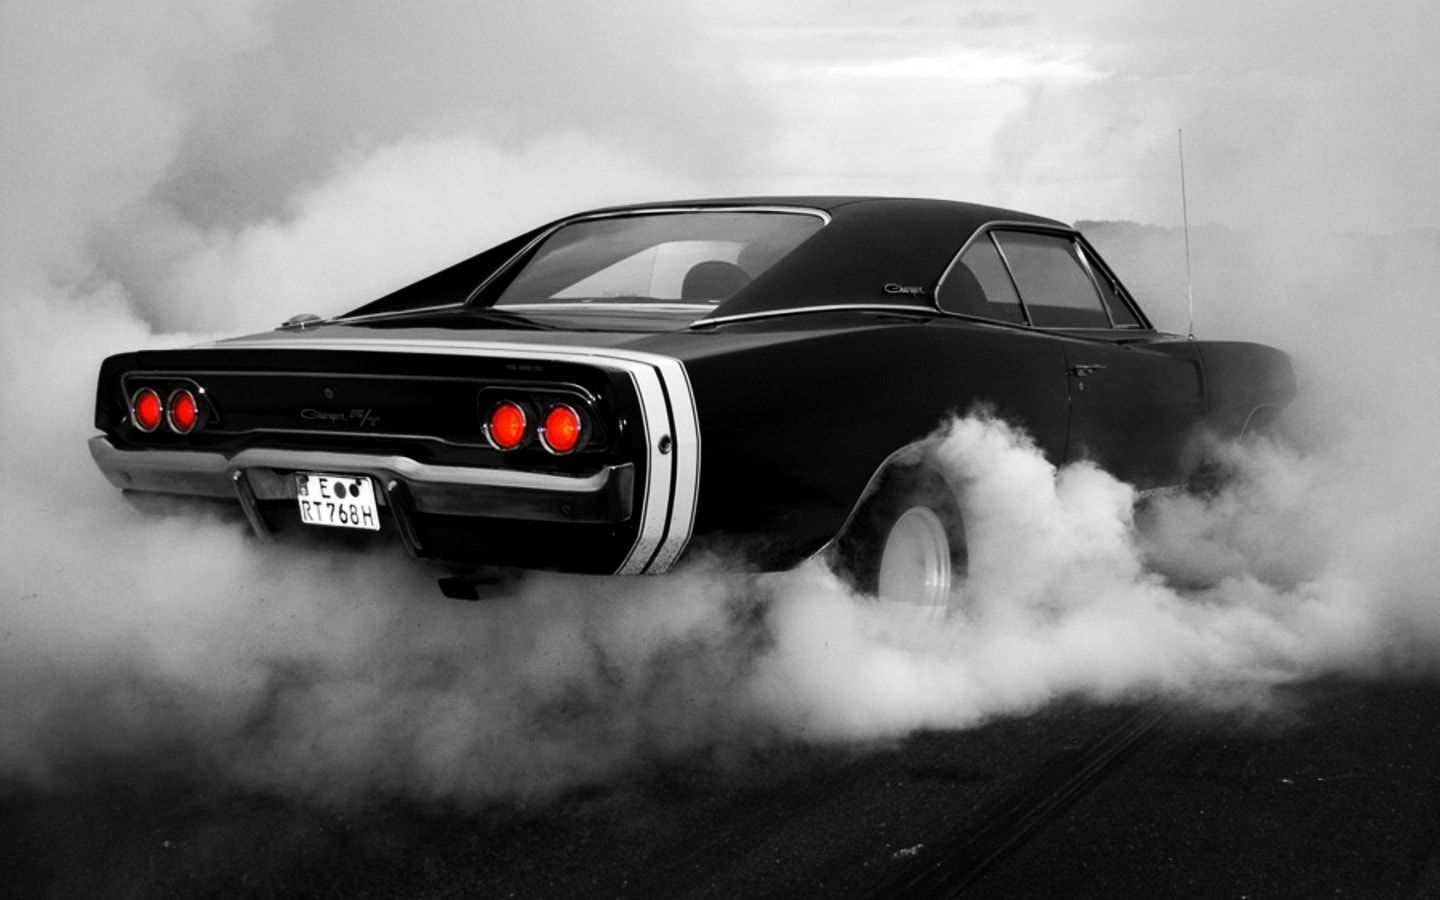 Monochrome Dodge Charger Burnout Smoke Muscle Car Tuning Con